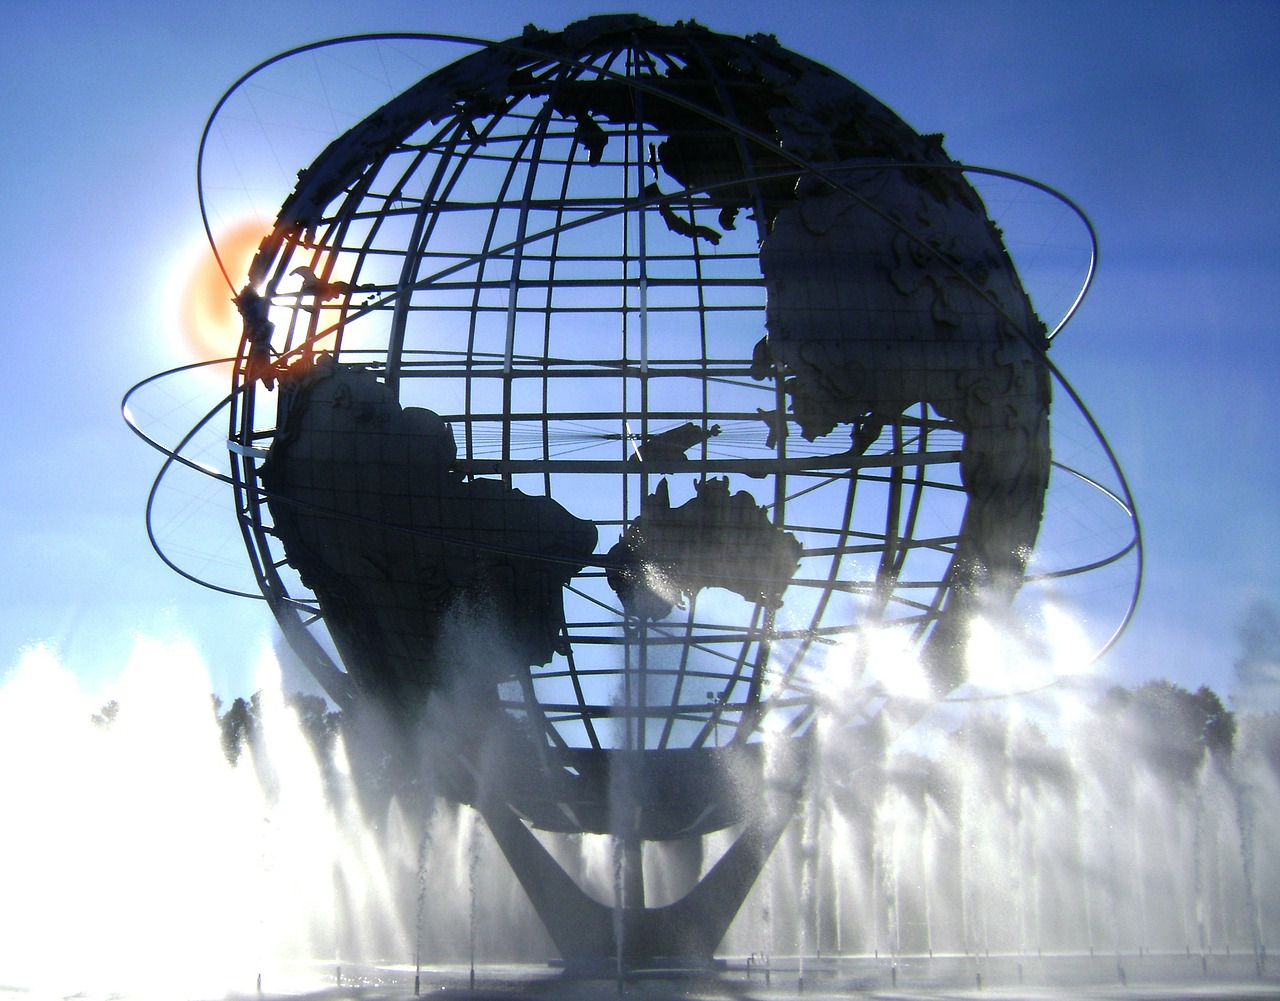 The Unisphere is one of the best Queens attractions as well as one of the best free things to do in Queens, New York. This is one of Queens points of interest. Read the article and discover the top places to see in Queens, NY. #queens #queensny #queensguide #queenstravelling #queensattractions #usa